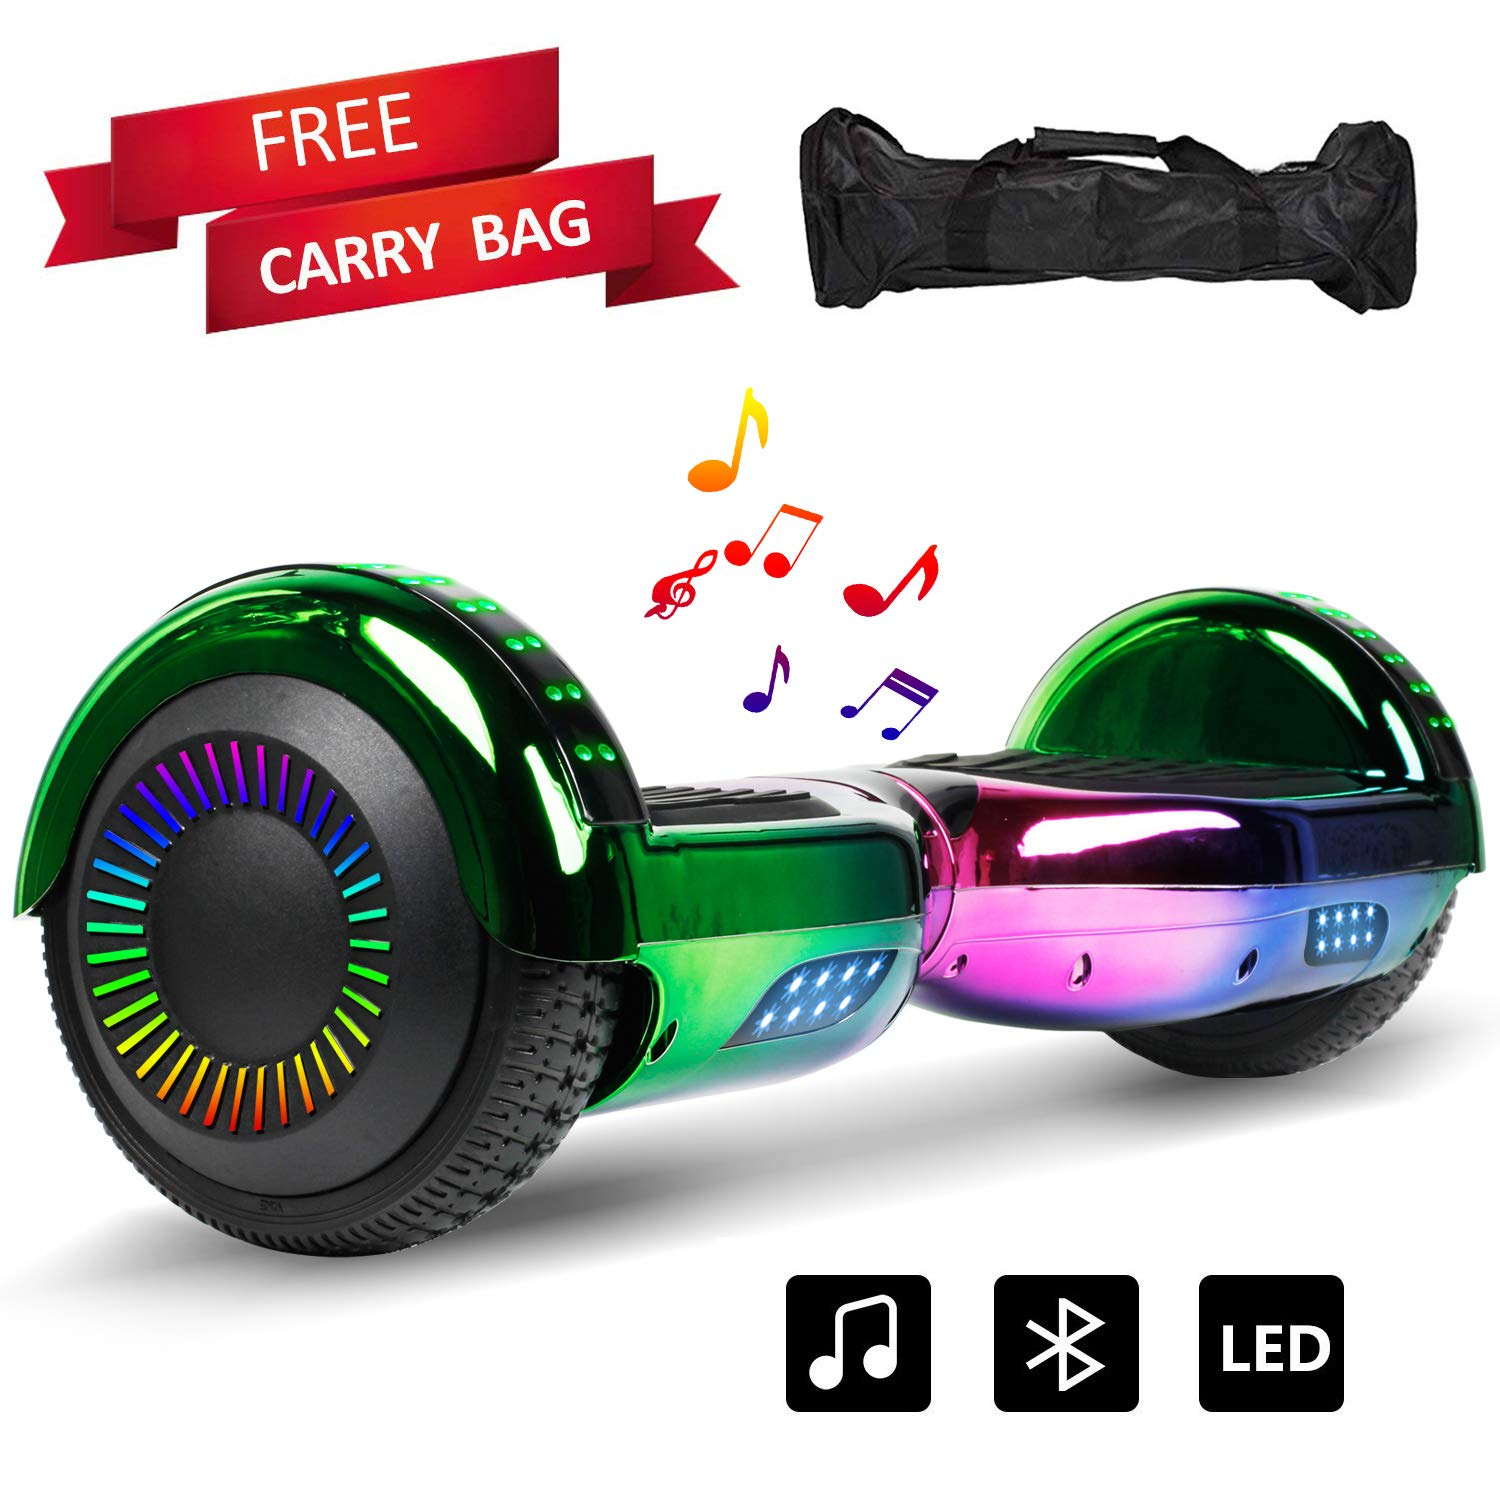 Sea Eagle Hoverboard Self Balancing Scooter Bluetooth Speaker Hover Board for Kids Adults with UL2272 Certified, Wheels LED Lights and Portable Carrying Bag - Chrome Colorful